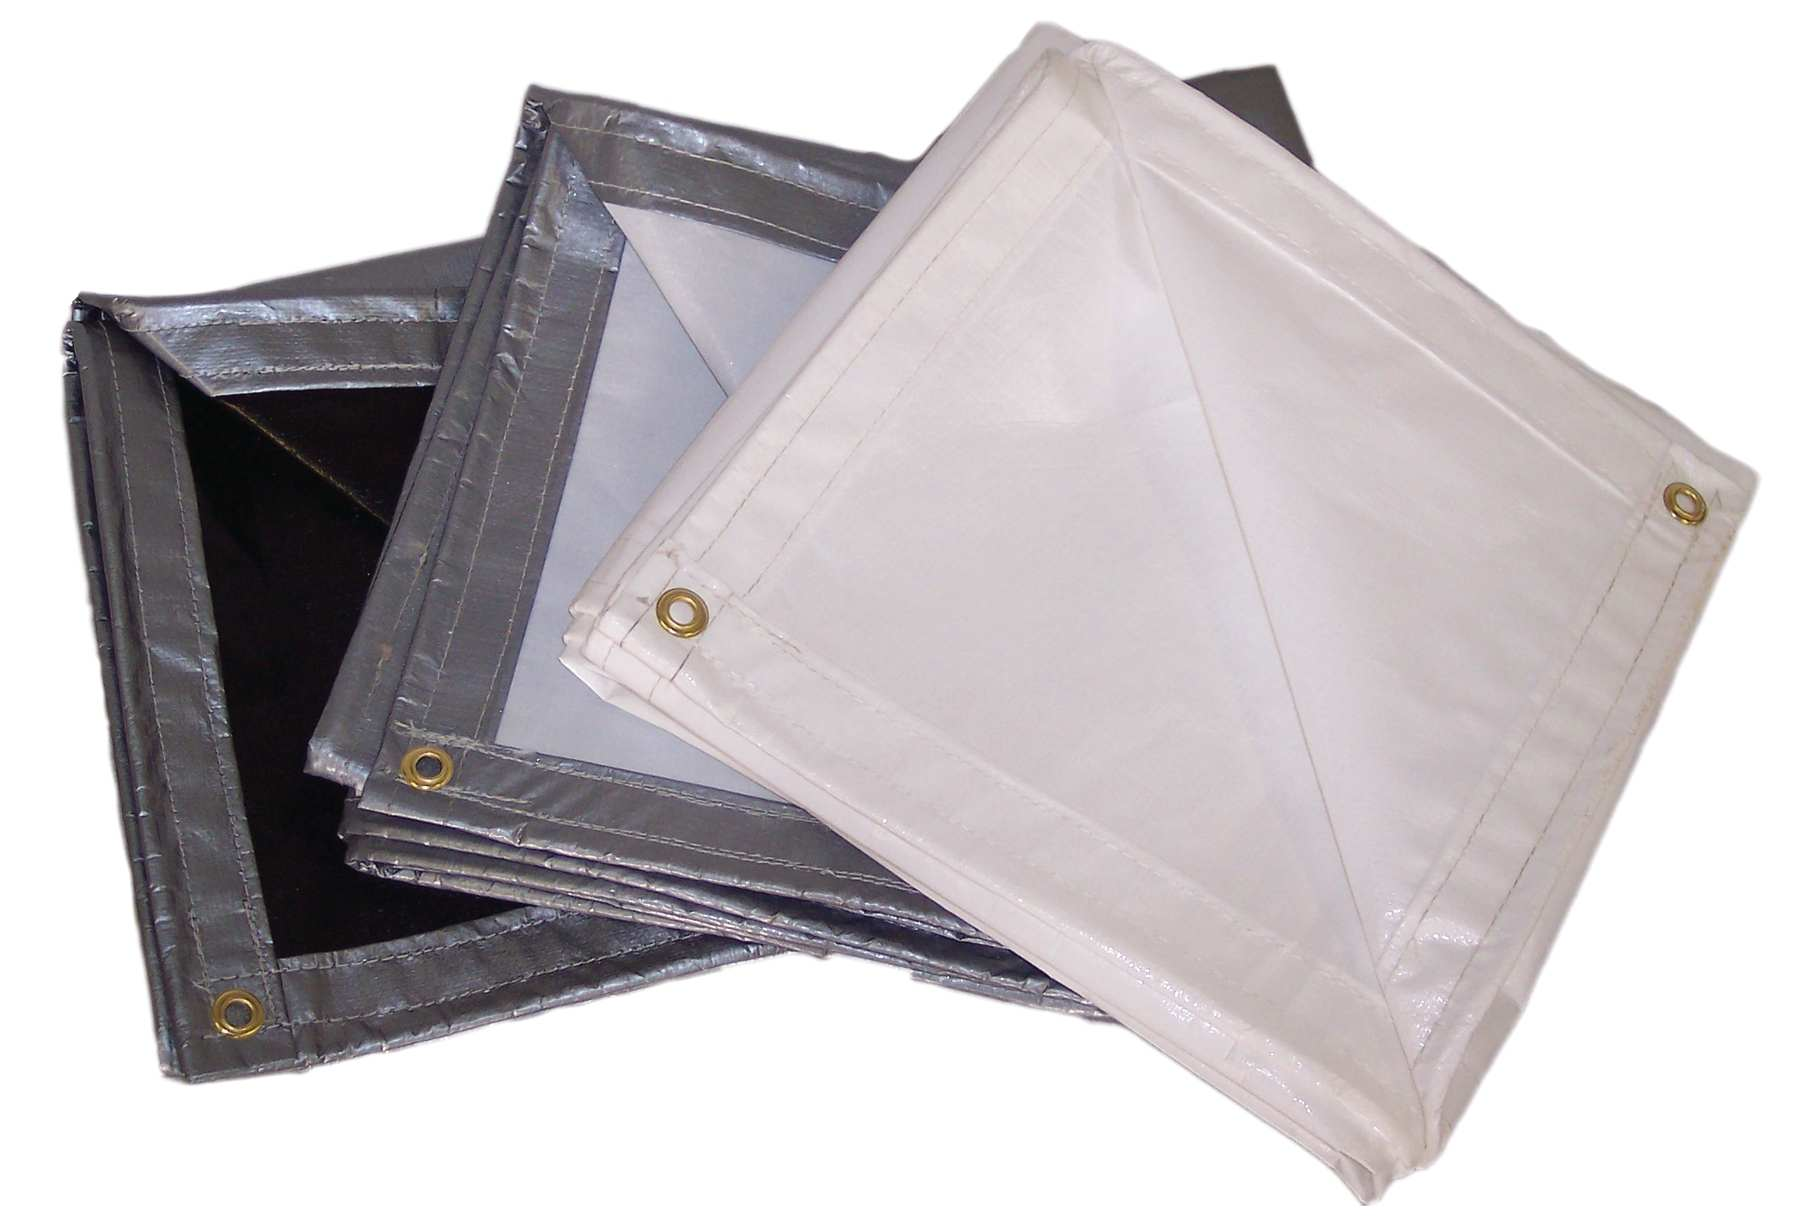 Heavy Duty Reinforced Polyethylene Tarps – 12 mil., 7 oz./sq. Yd.; Size (ft.) 30 x 30